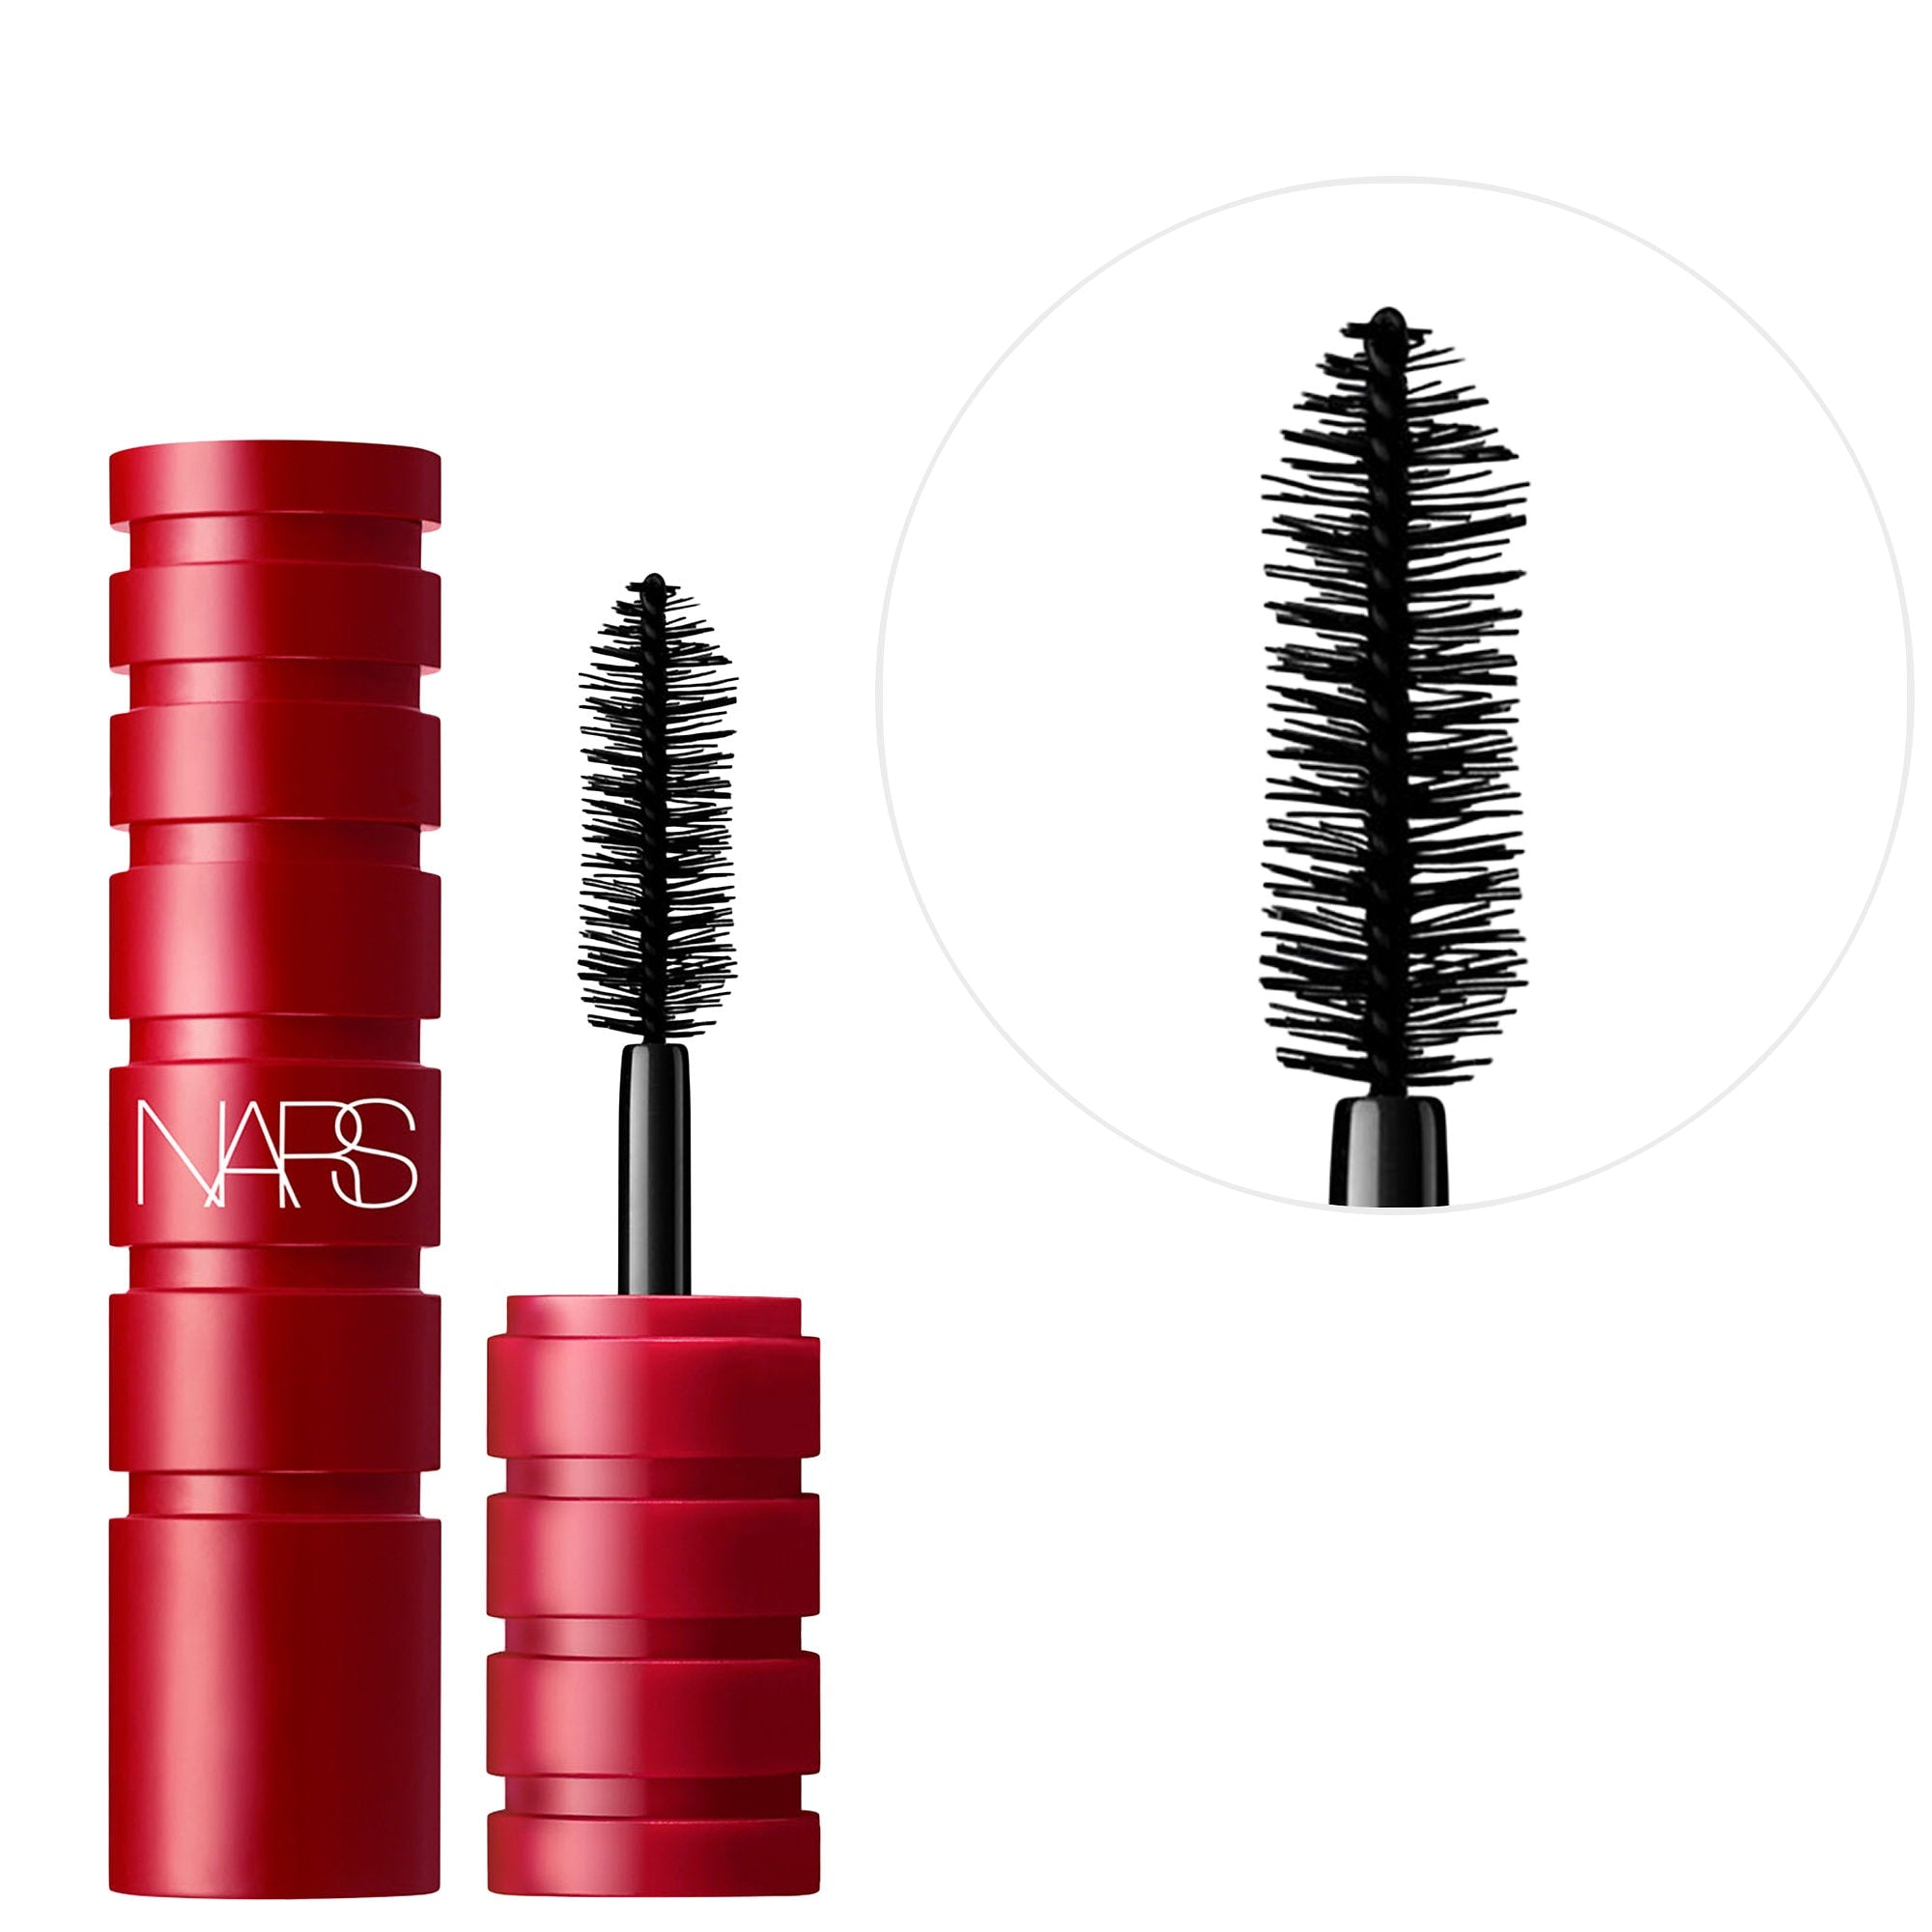 NARS Climax Mascara Mini, 2.5g (Unboxed)